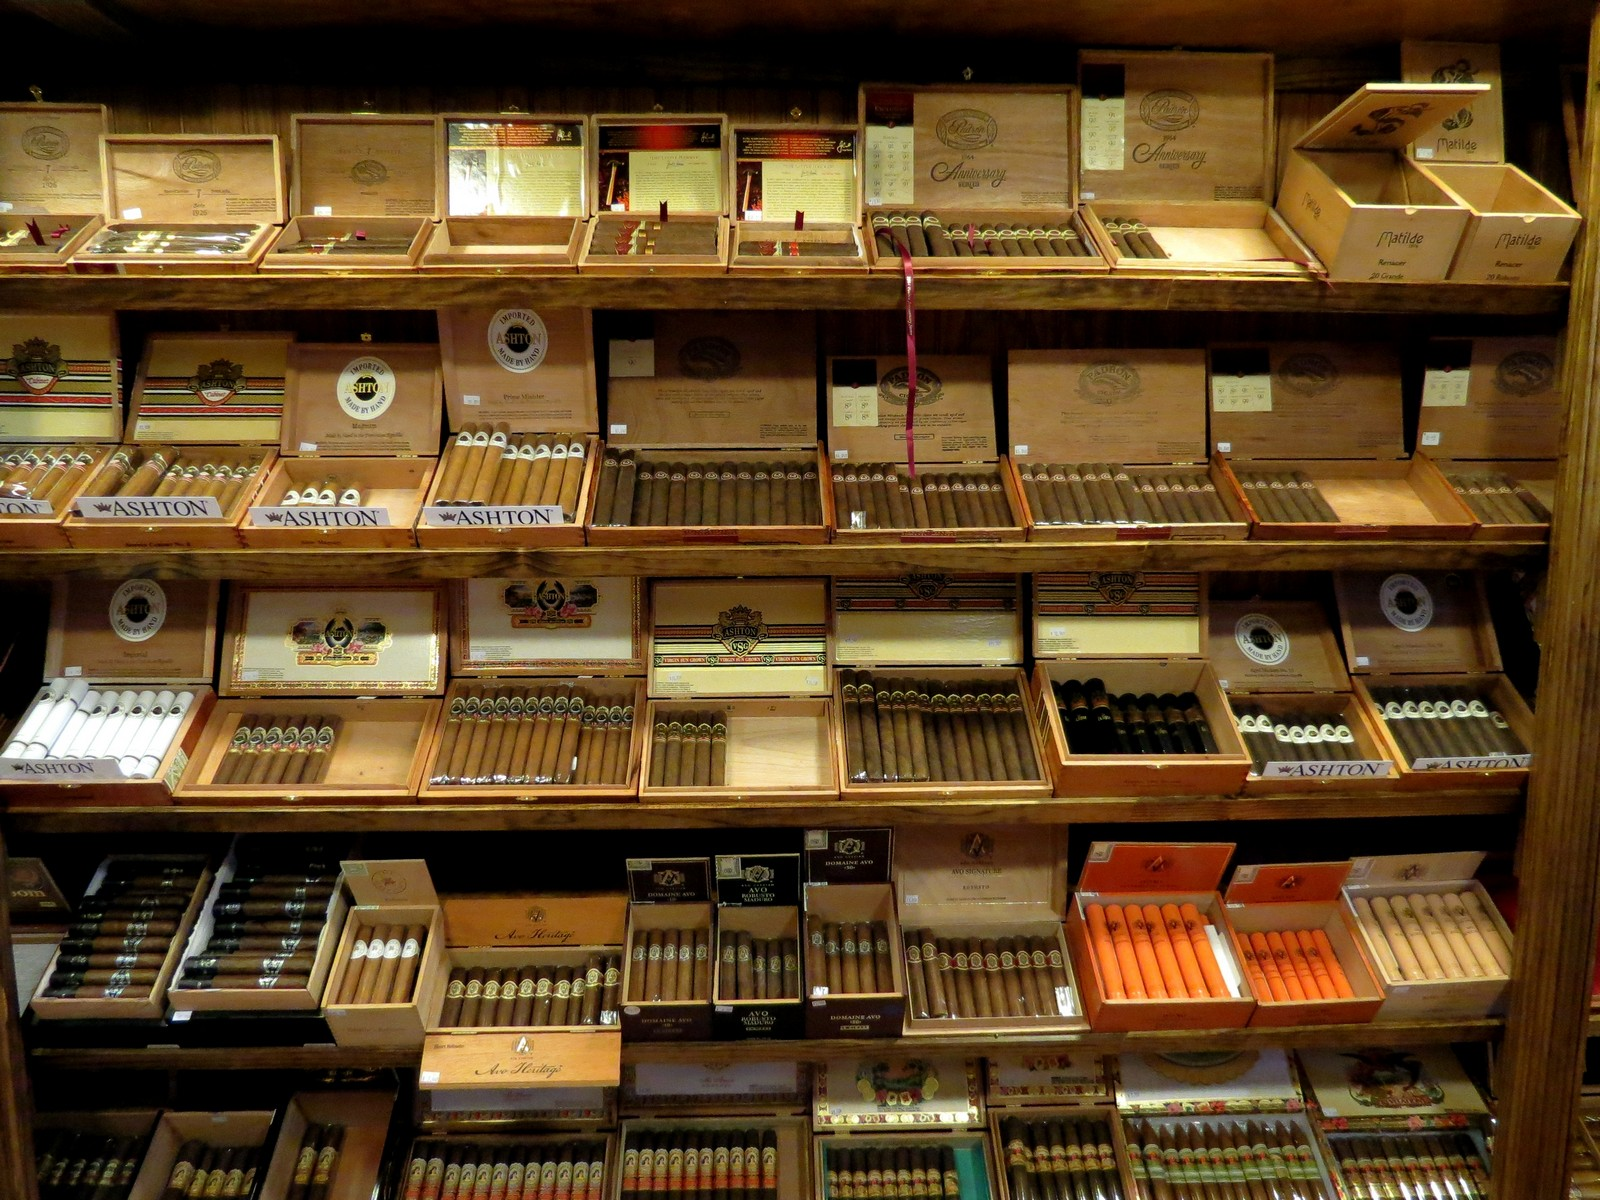 Humidor Section